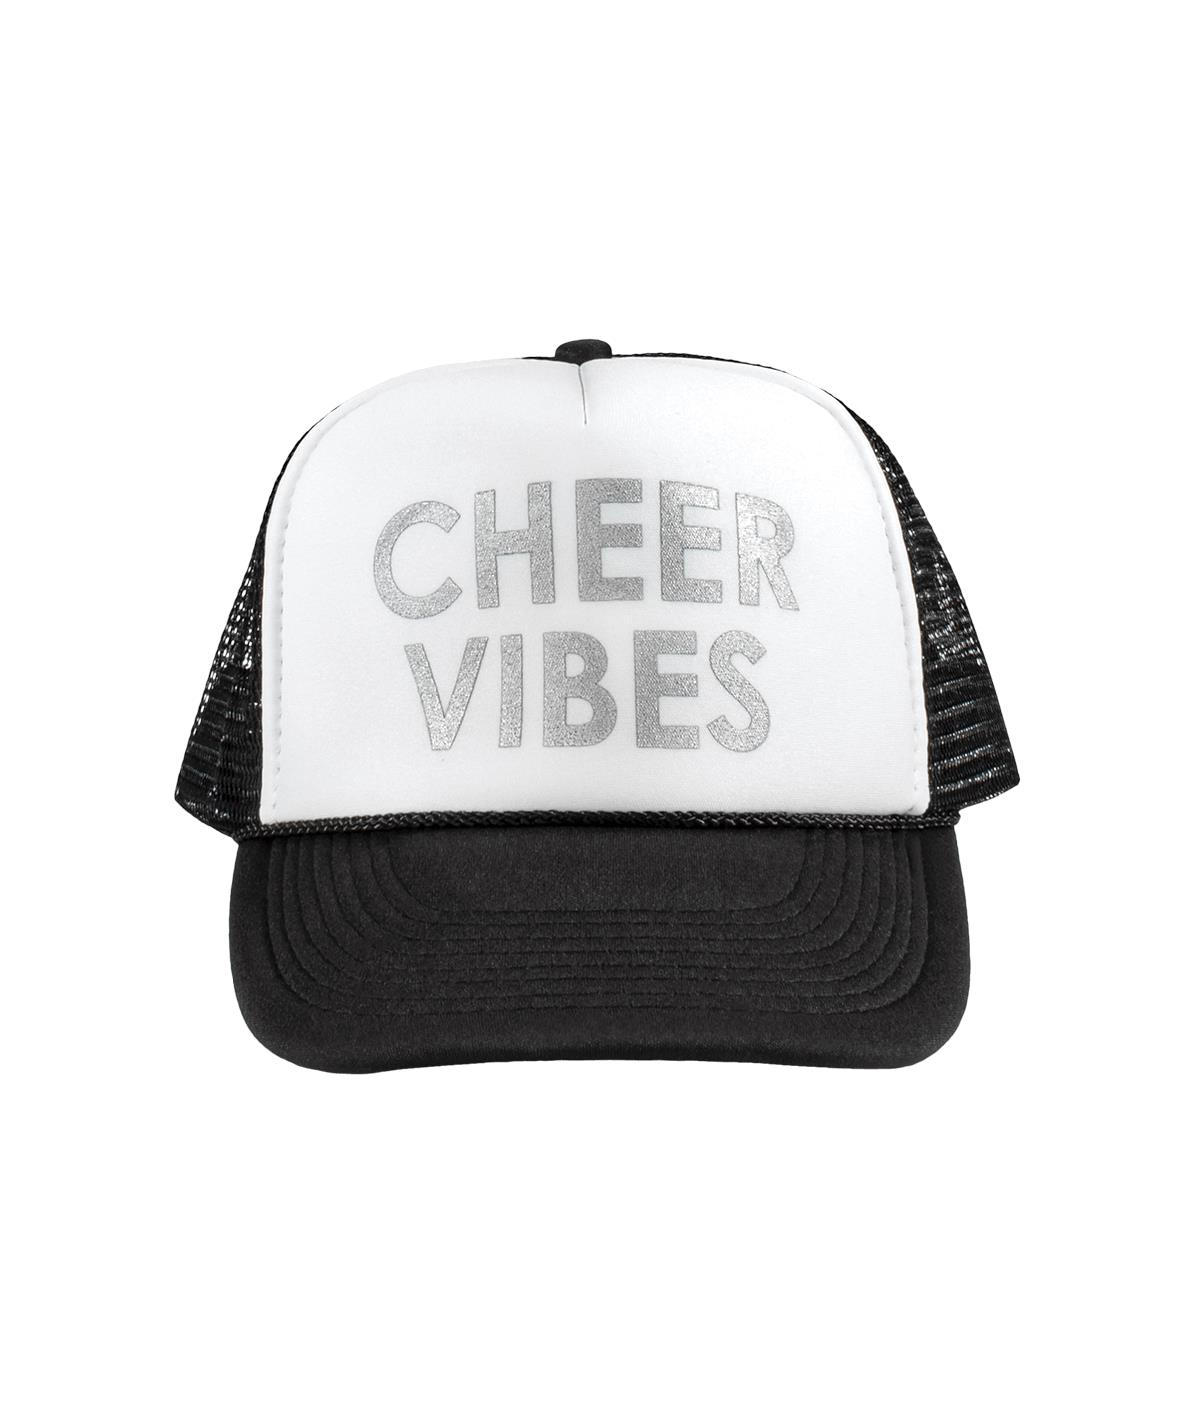 CHASSE CHEER VIBES TRUCKER HAT